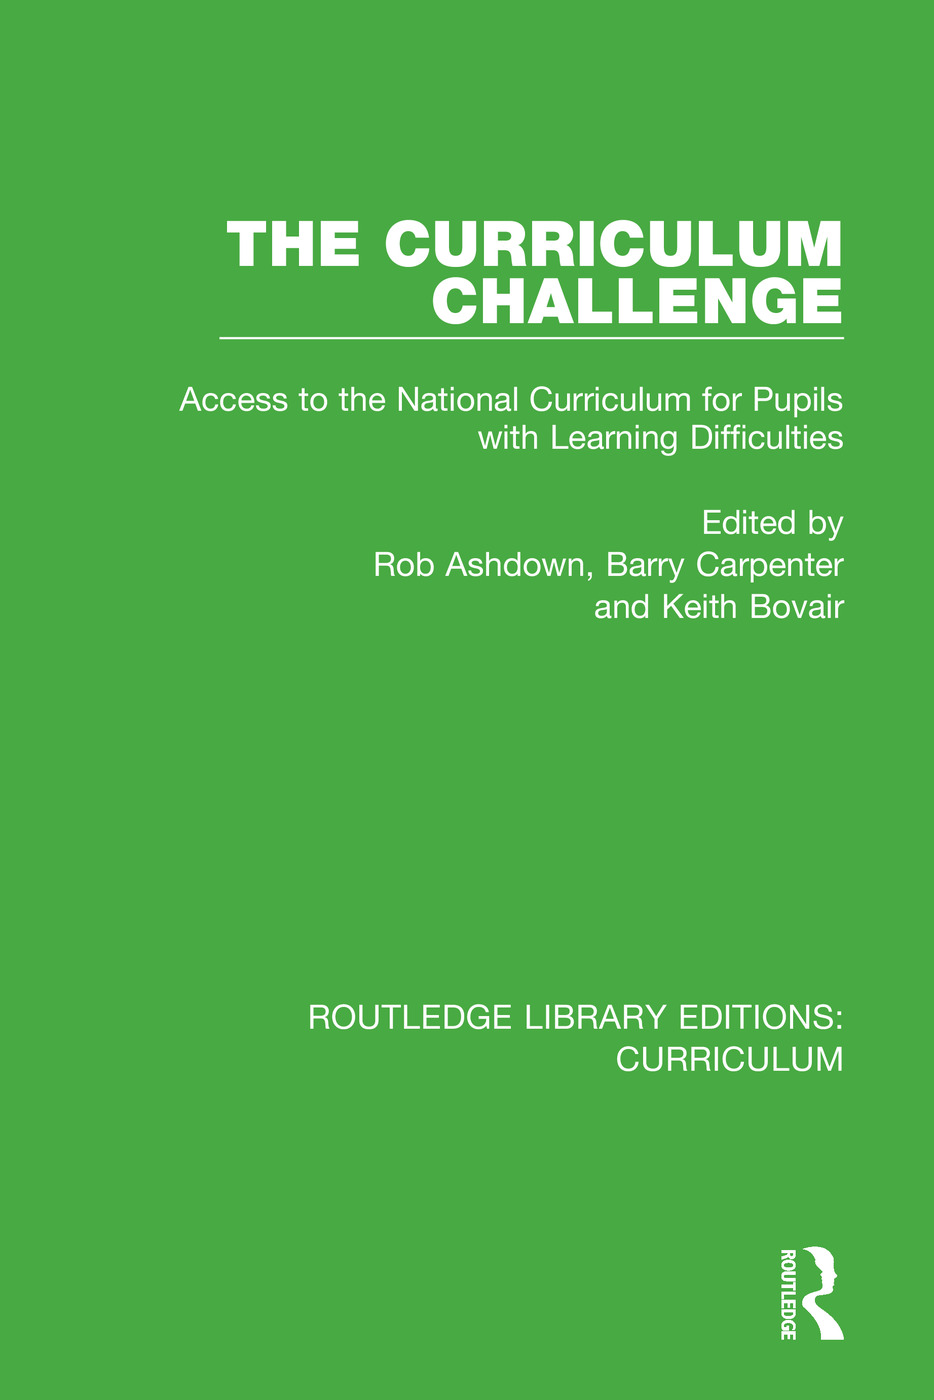 The Curriculum Challenge: Access to the National Curriculum for Pupils with Learning Difficulties book cover